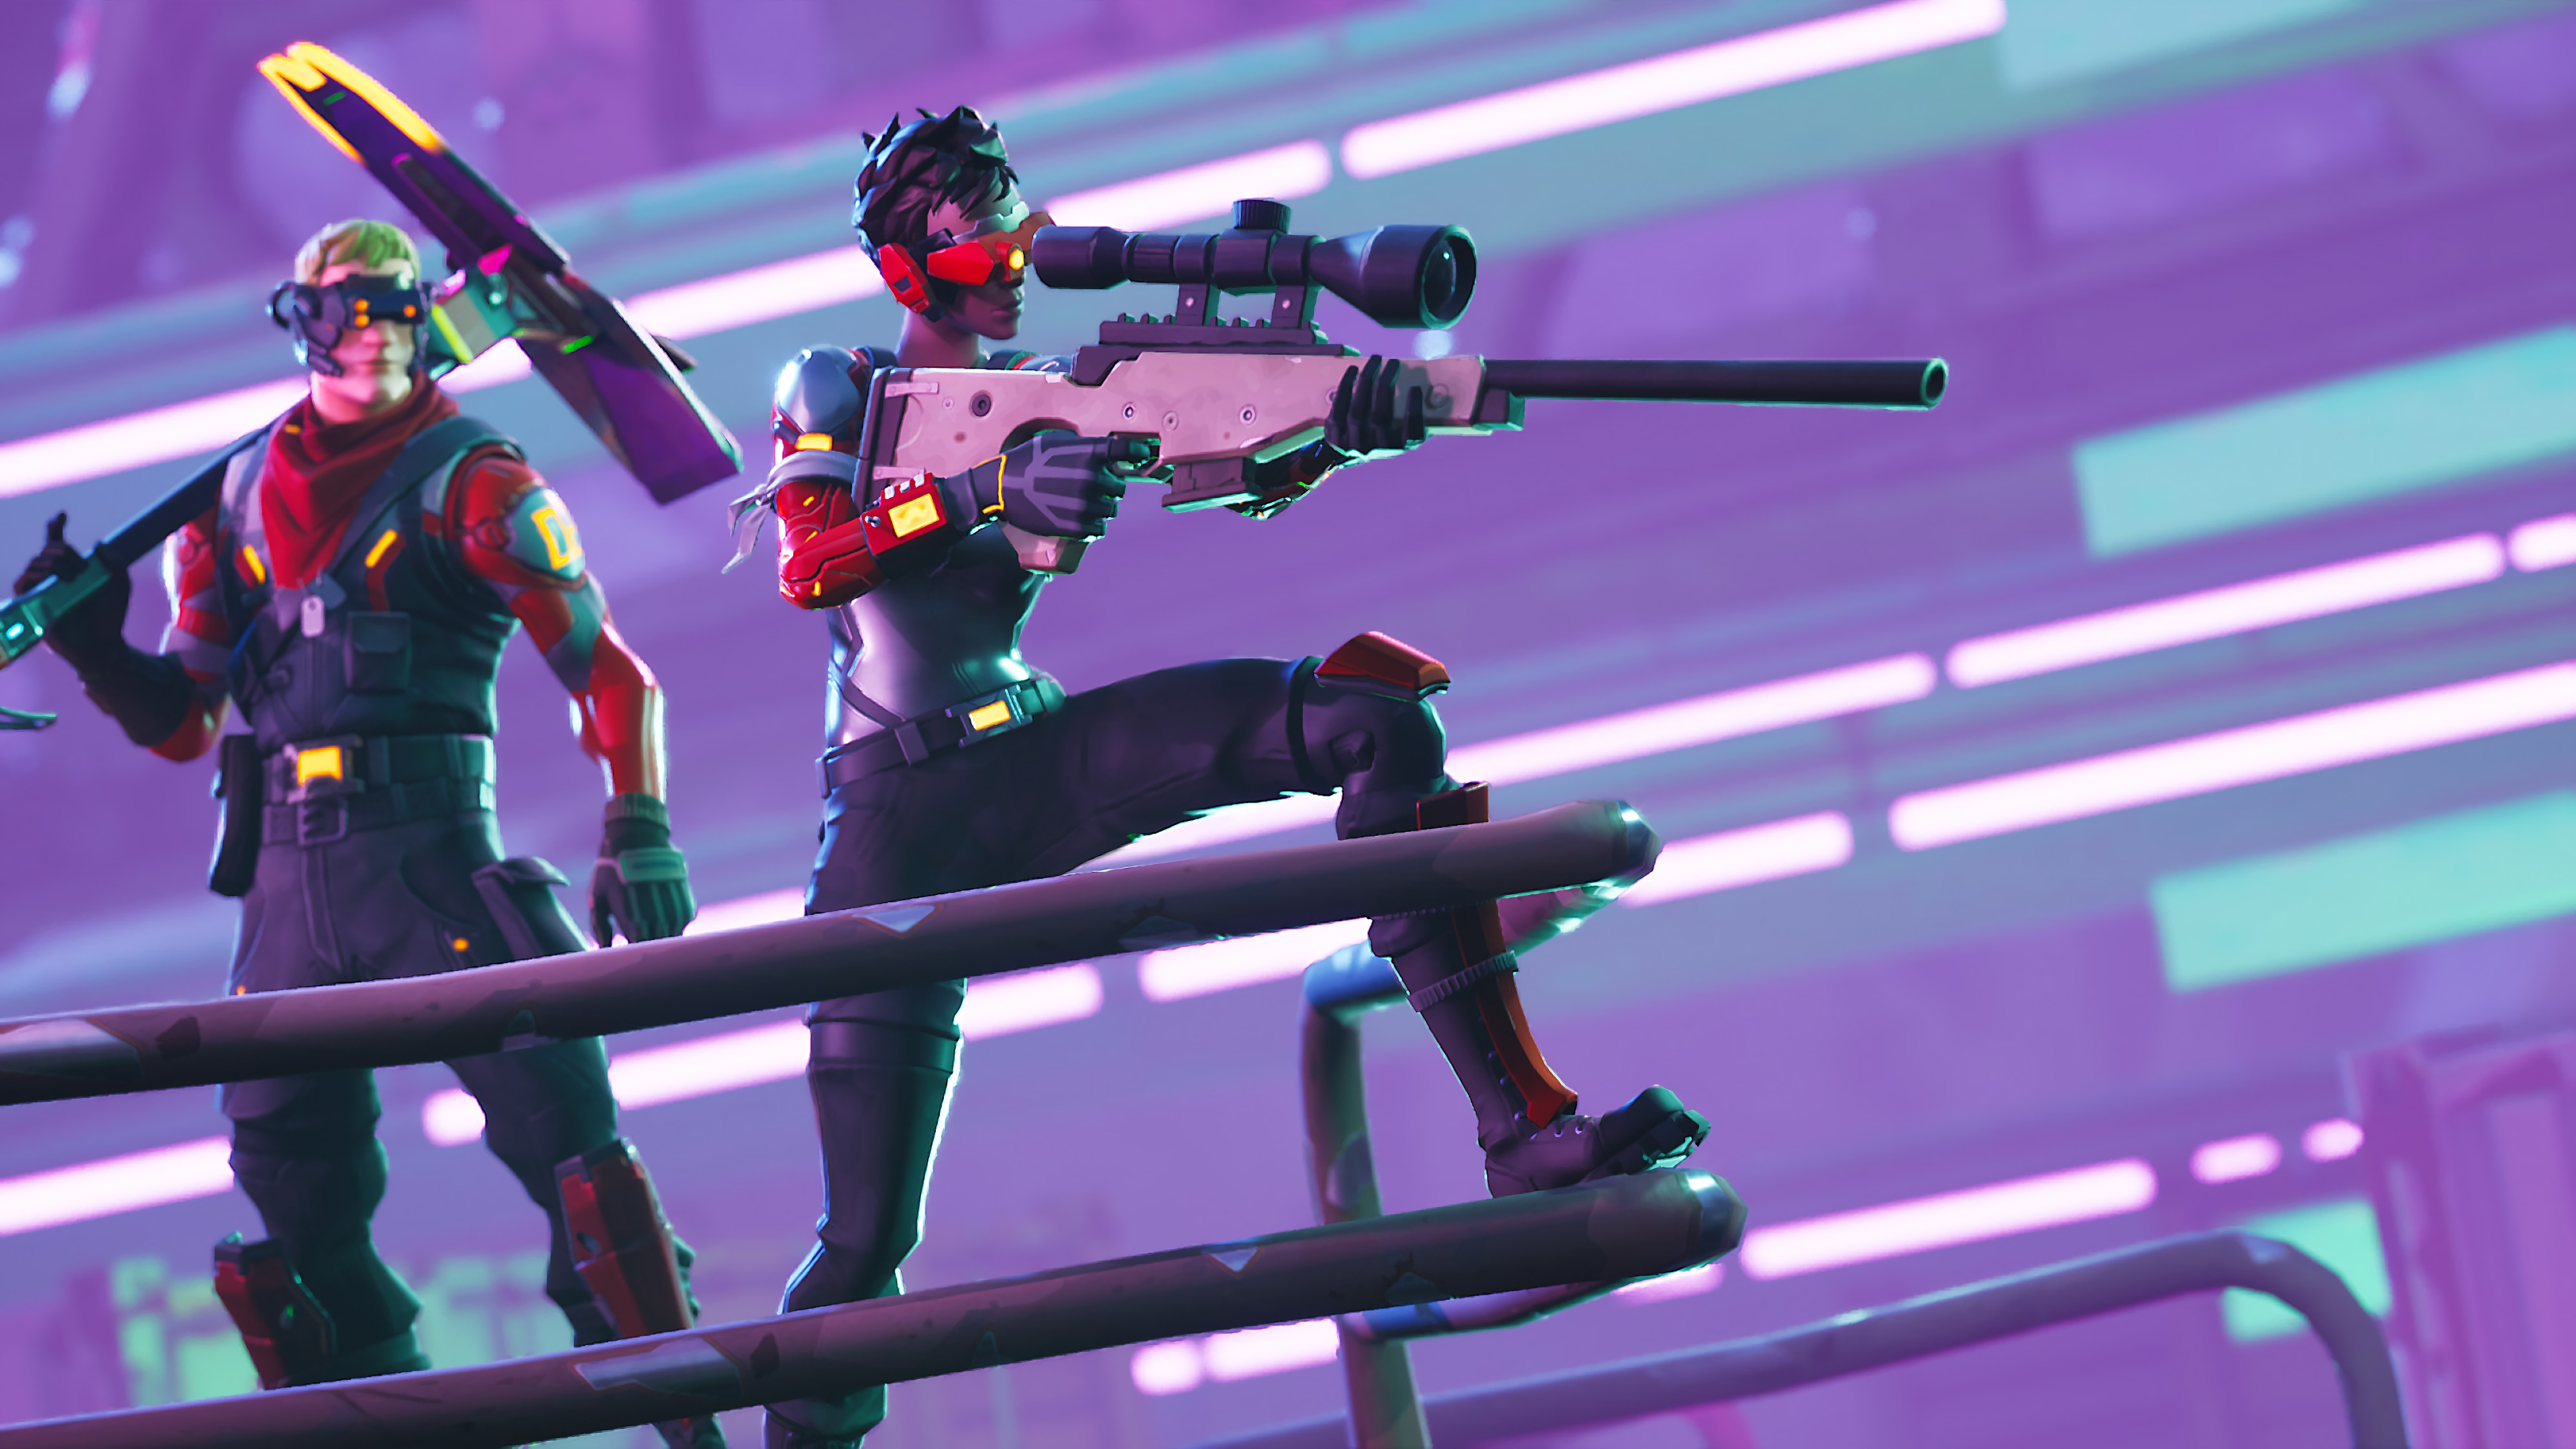 Circuit Breaker 4K 8K HD Fortnite Battle Royale Wallpaper 3840x2160